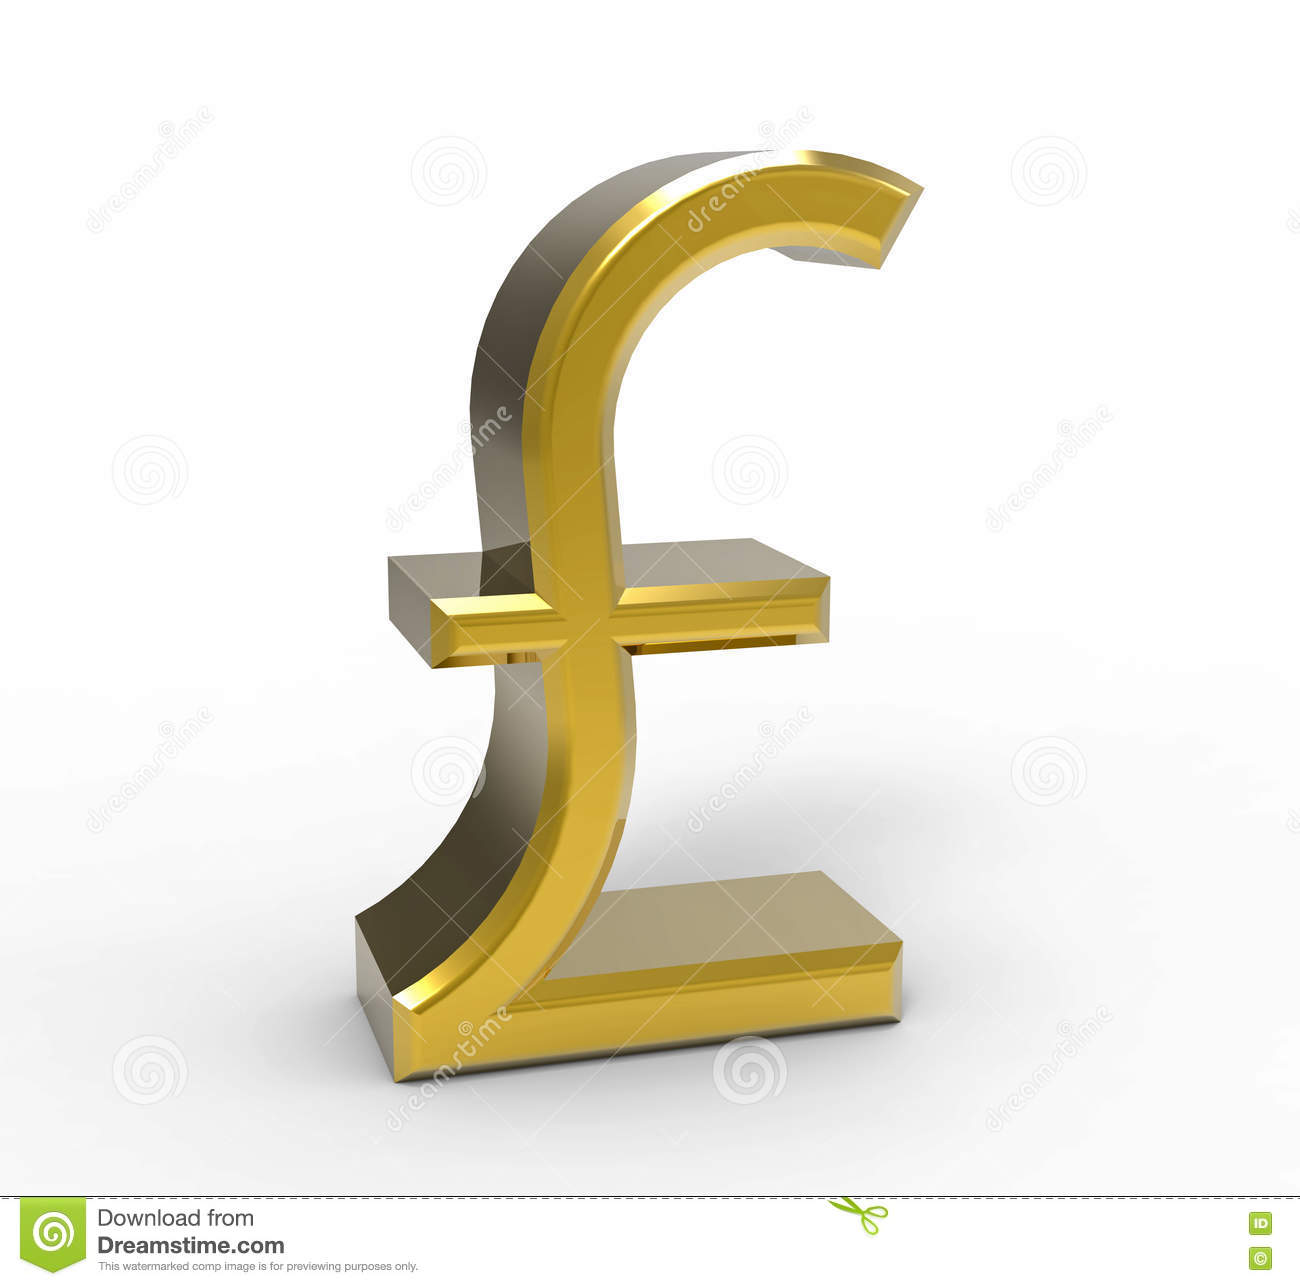 Symbol of pound currency gallery symbol and sign ideas symbol of the pound sterling 3d rendering stock illustration symbol of the pound sterling 3d rendering biocorpaavc Gallery